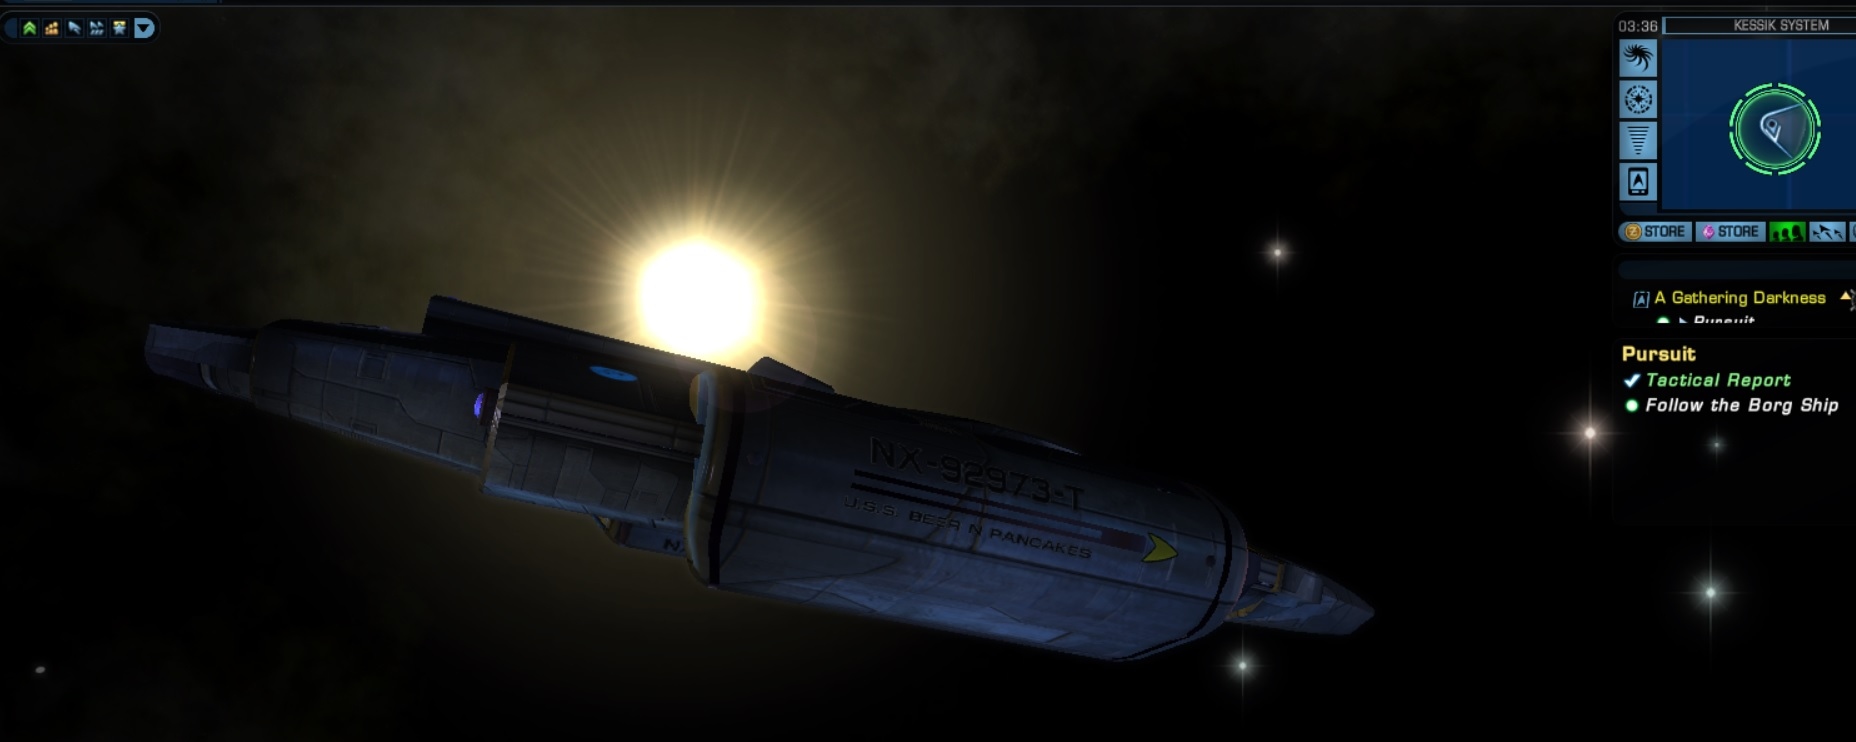 A picture of my ship in Star Trek online you may find the name familiar on the Nacelle.